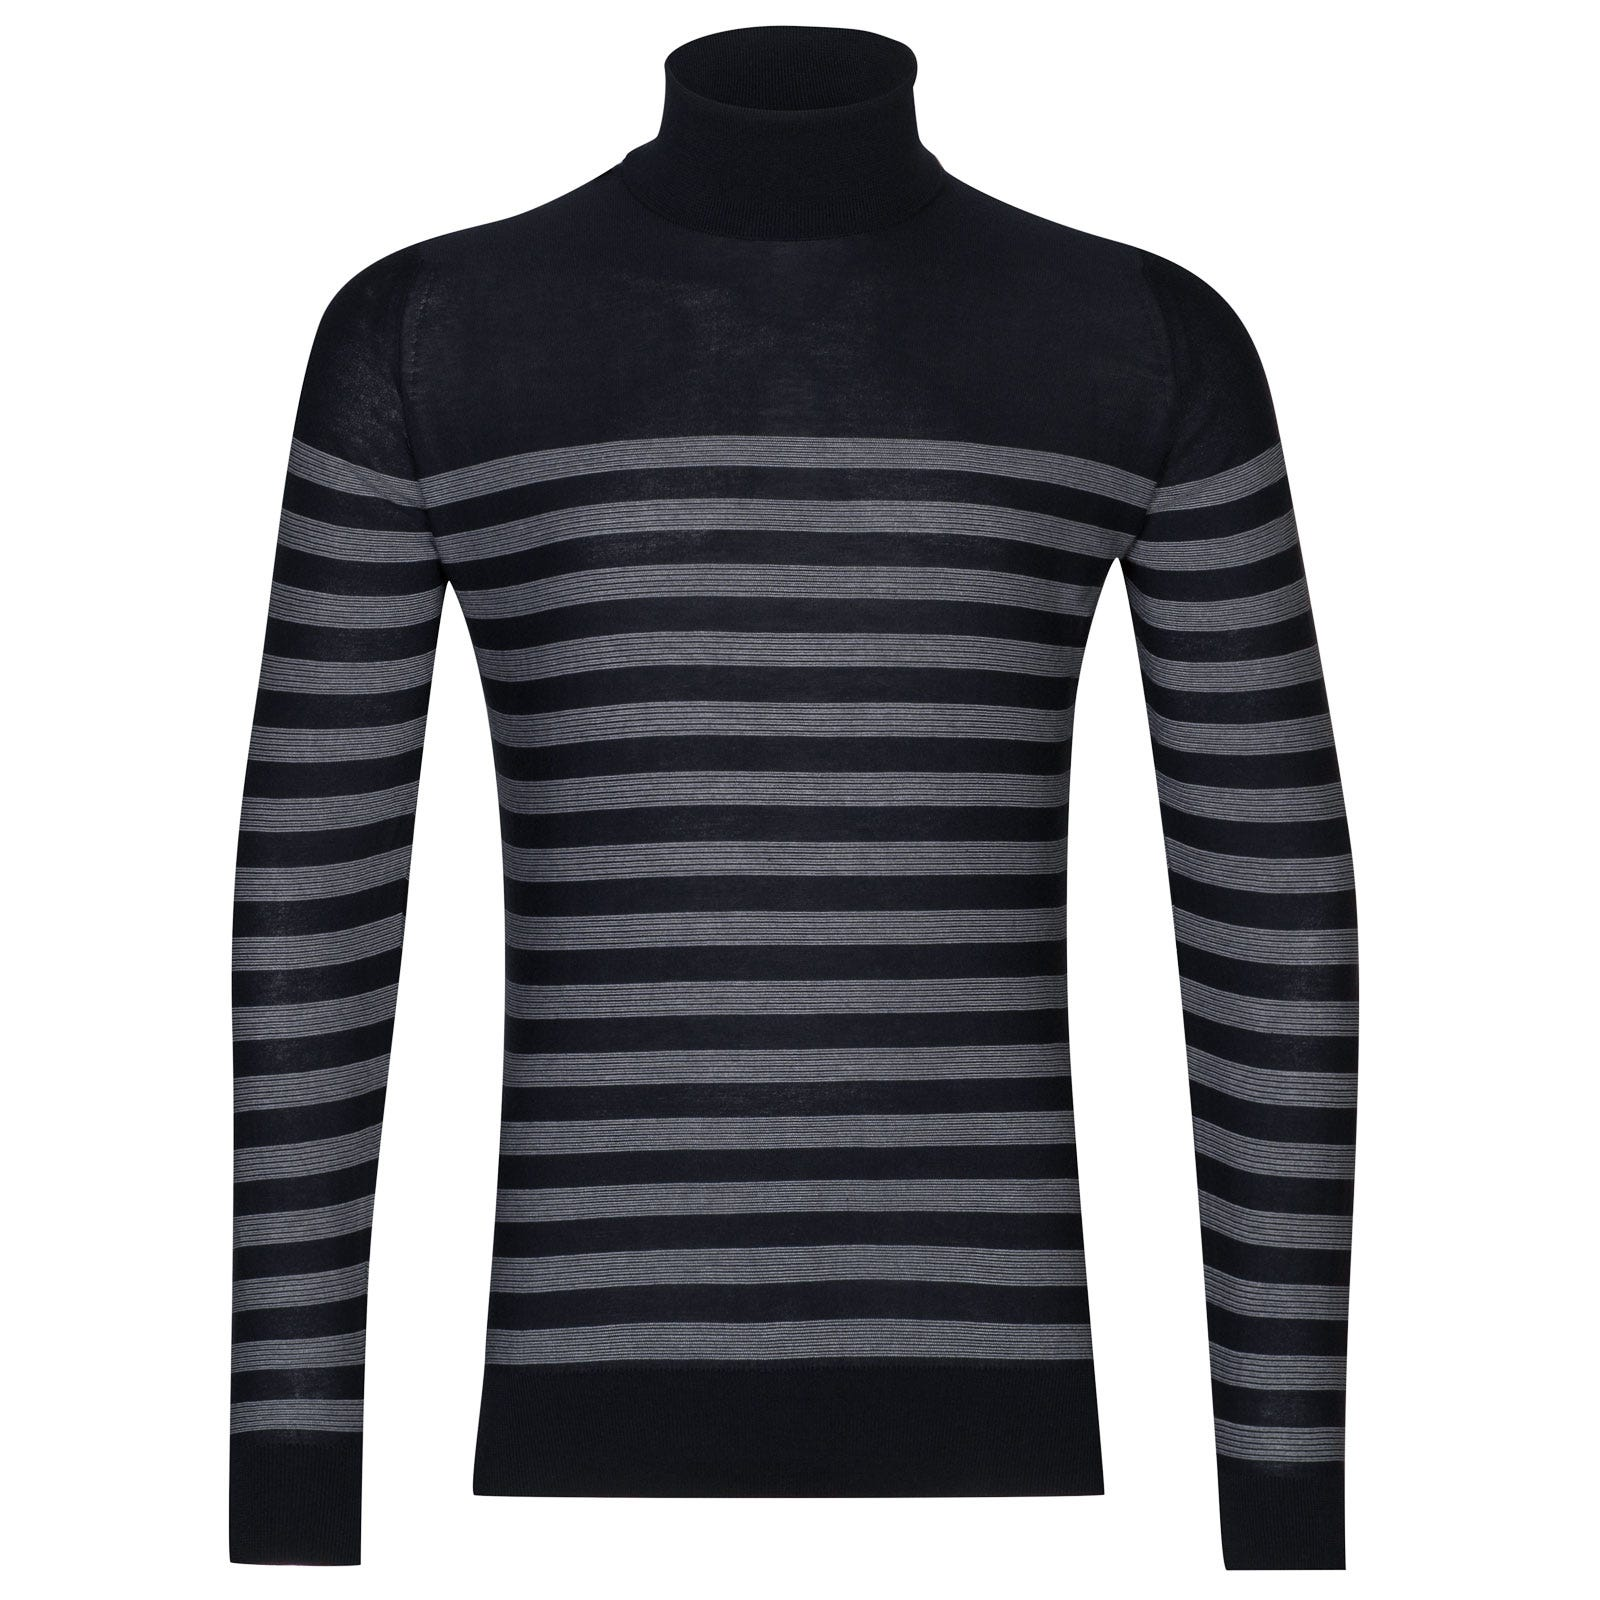 John Smedley tenby Sea Island Cotton Sweater in Navy/White-S